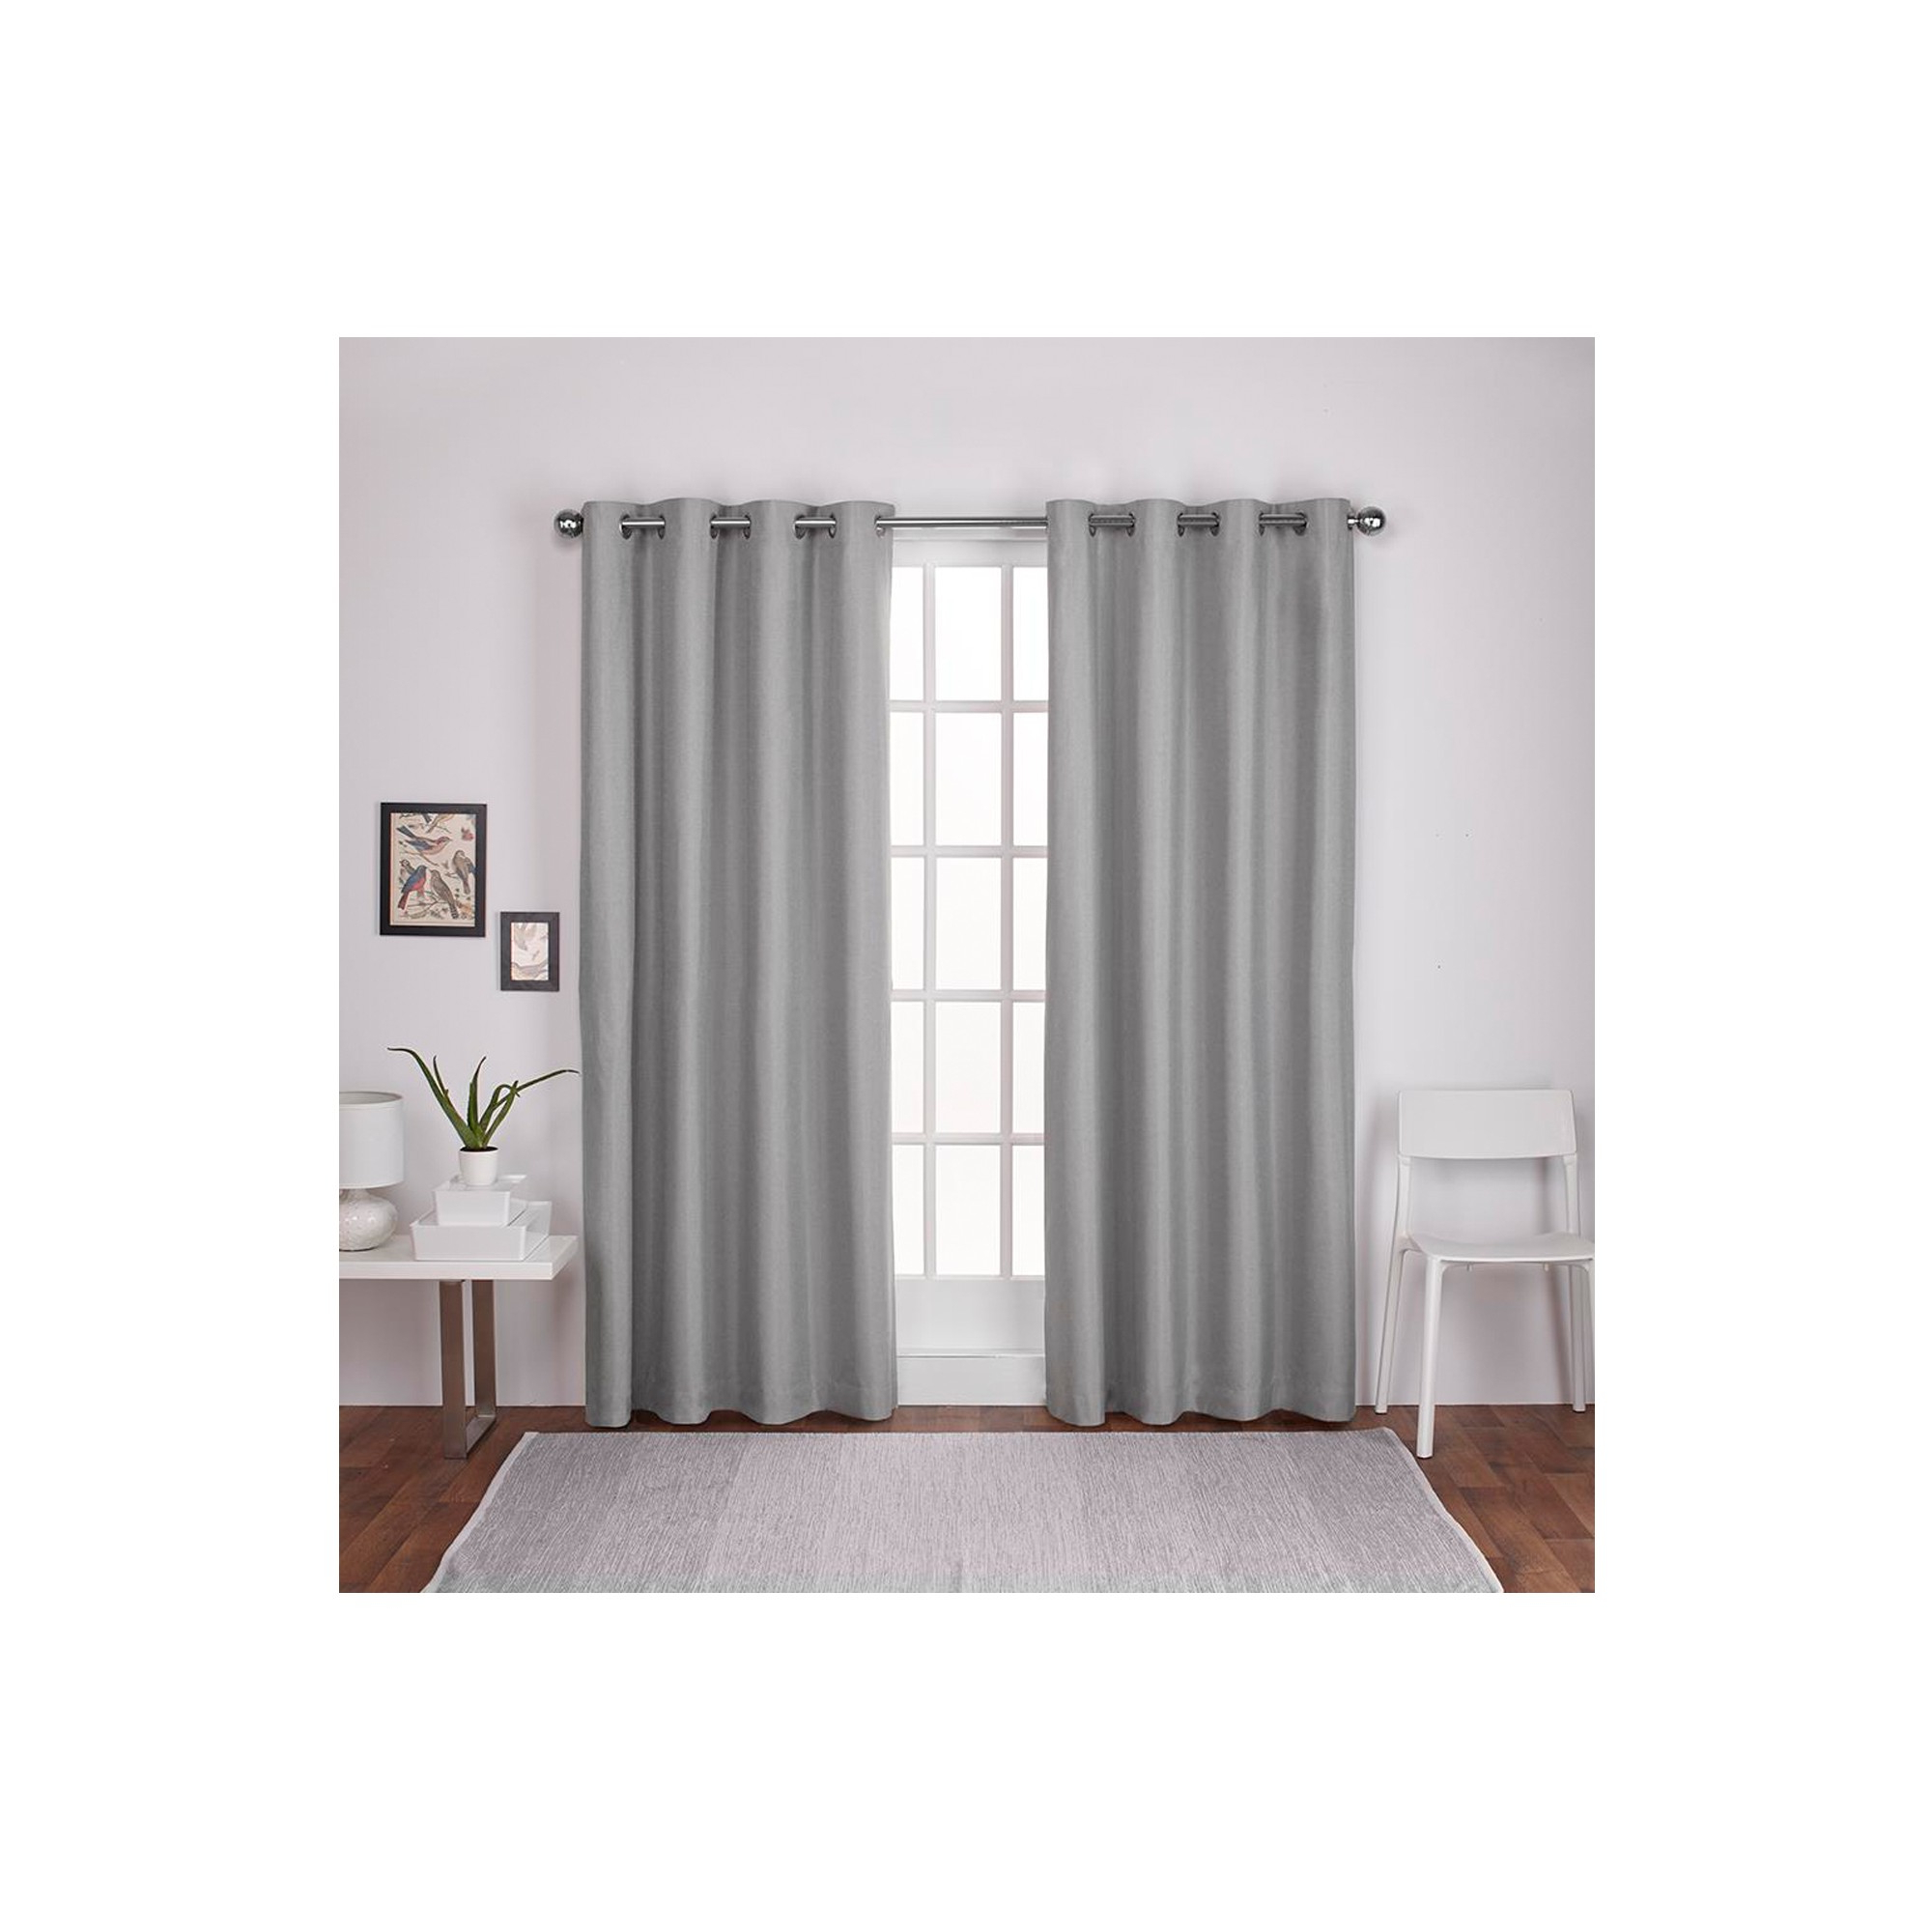 Most Recent London Thermal Textured Linen Grommet Top Window Curtain For Thermal Textured Linen Grommet Top Curtain Panel Pairs (View 10 of 20)